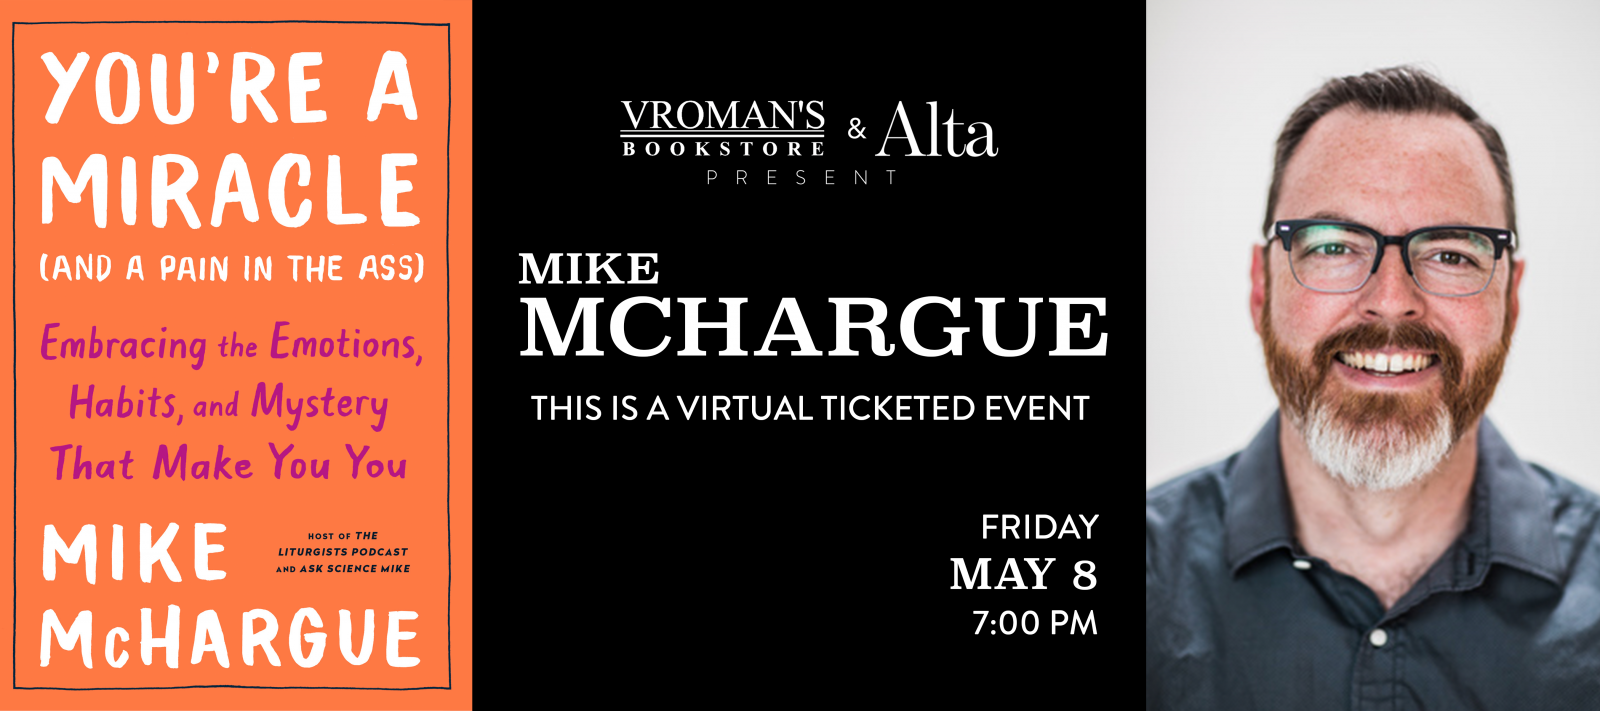 Mike McHargue ticketed virtual book talk on Friday May 8th at 7pm. Tickets available on eventbrite.